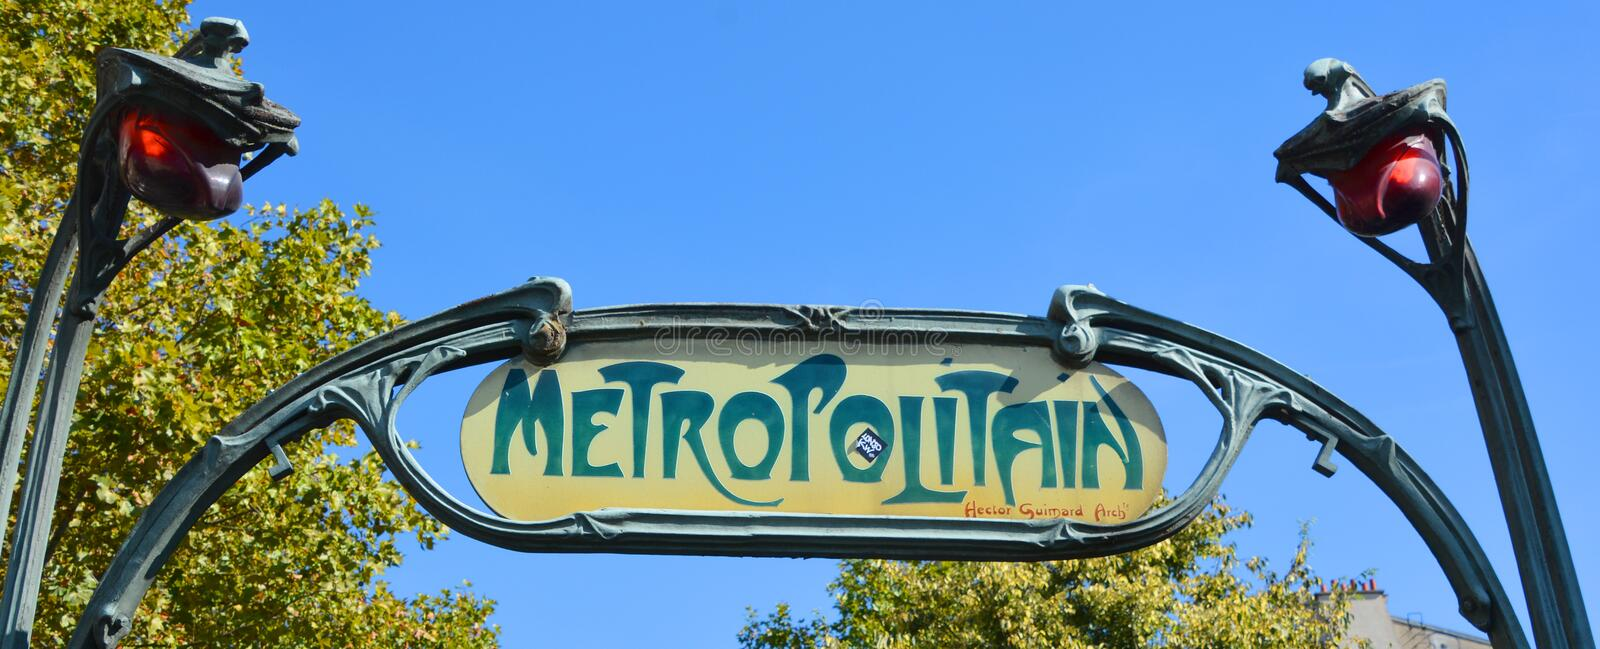 Famous historic Art Nouveau entrance sign. PARIS FRANCE OCTOBER 15, 2014: Famous historic Art Nouveau entrance sign for the Metropolitain underground railway stock photography